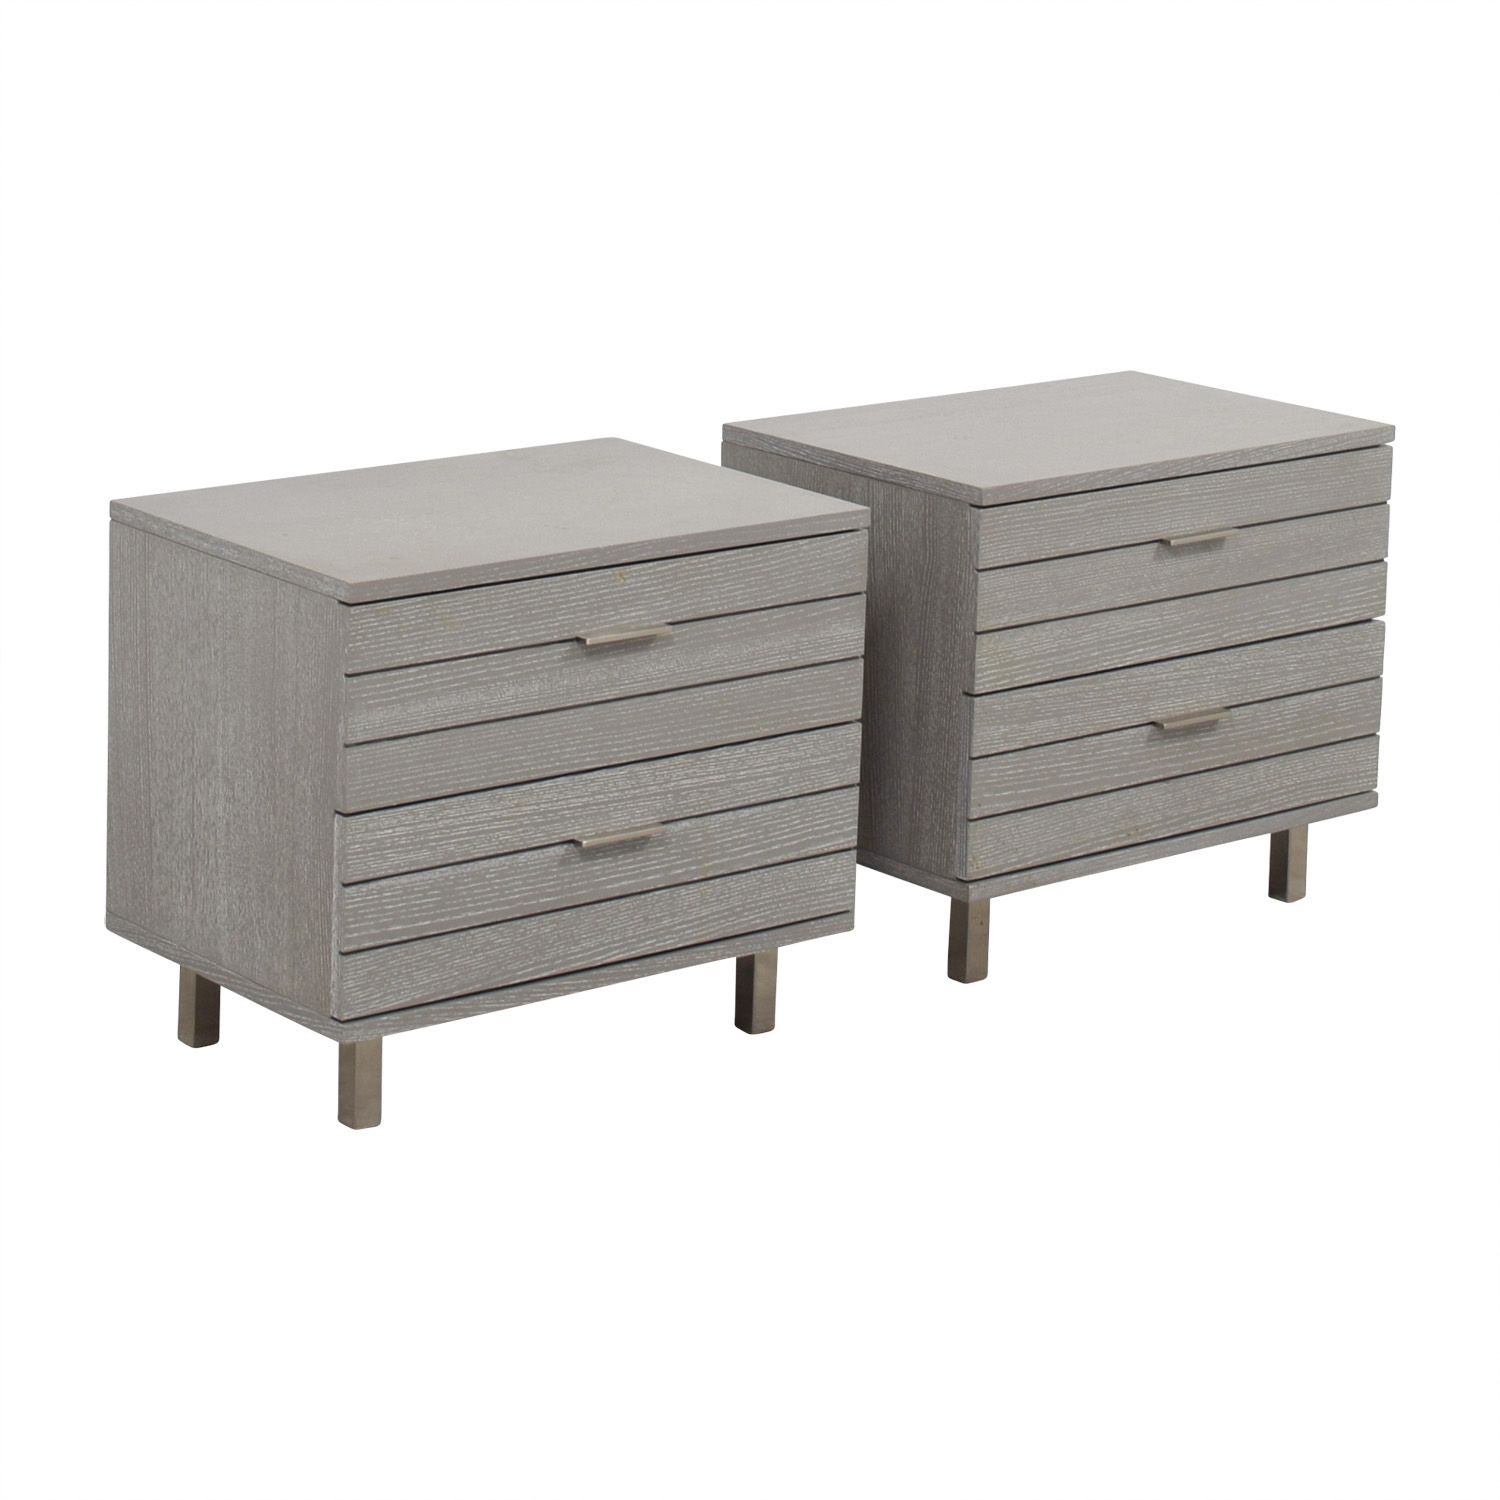 CB2 CB2 Grey Two-Drawer Night Stands Tables